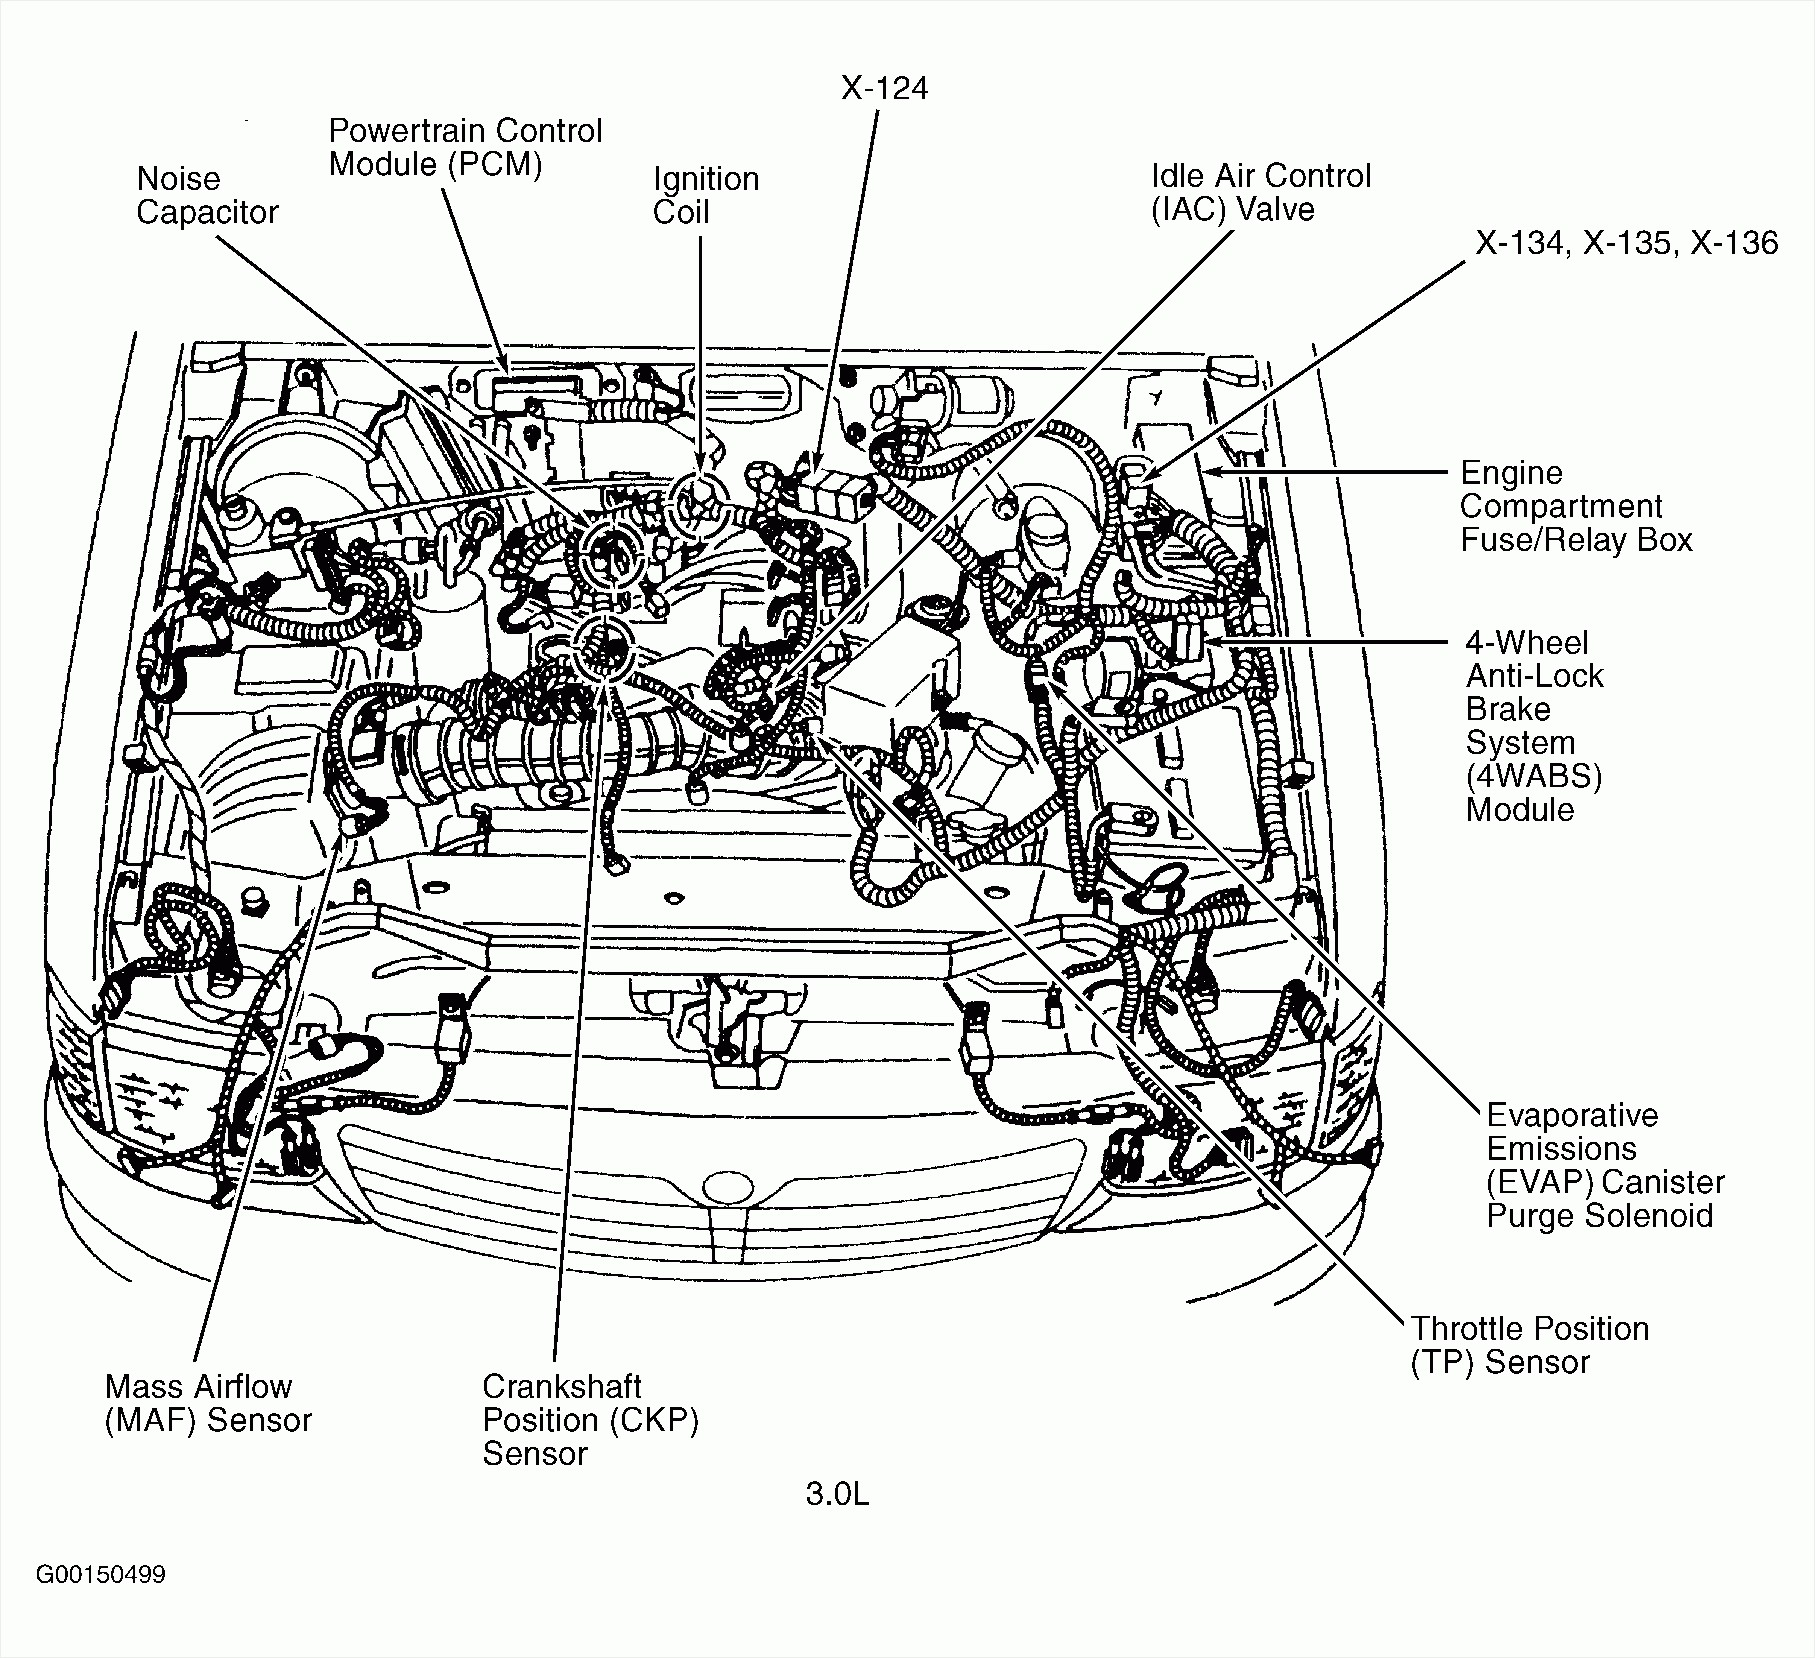 hight resolution of 97 lumina 3 1 wiring diagram trusted wiring diagram 97 suburban wiring diagram 1l 3 lumina